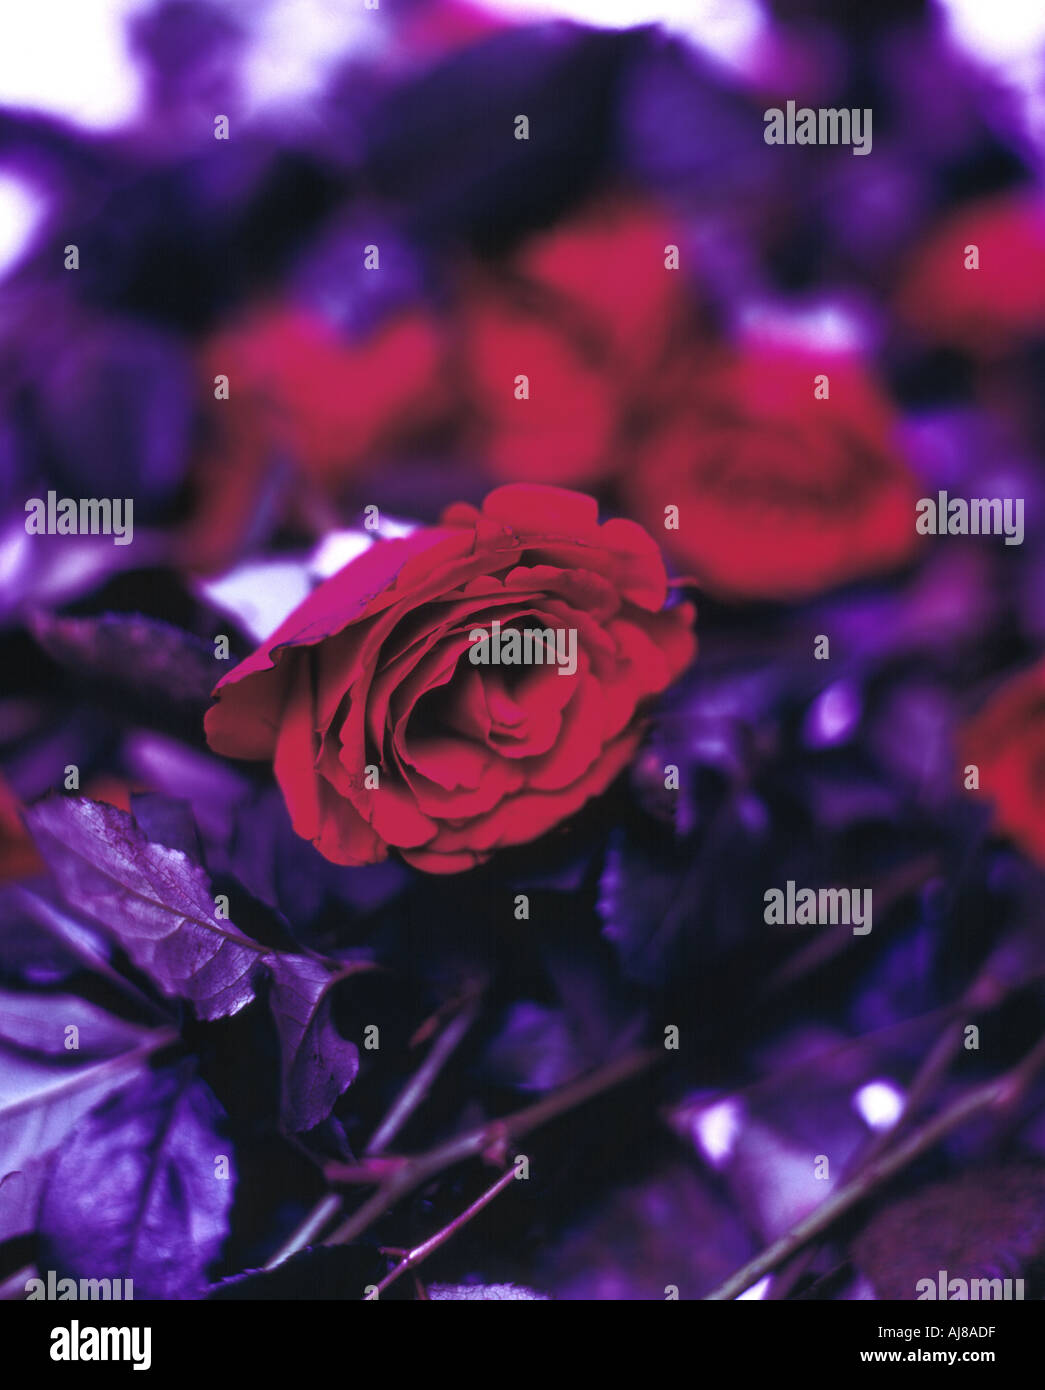 Purple Red Roses Stock Photos & Purple Red Roses Stock Images - Alamy